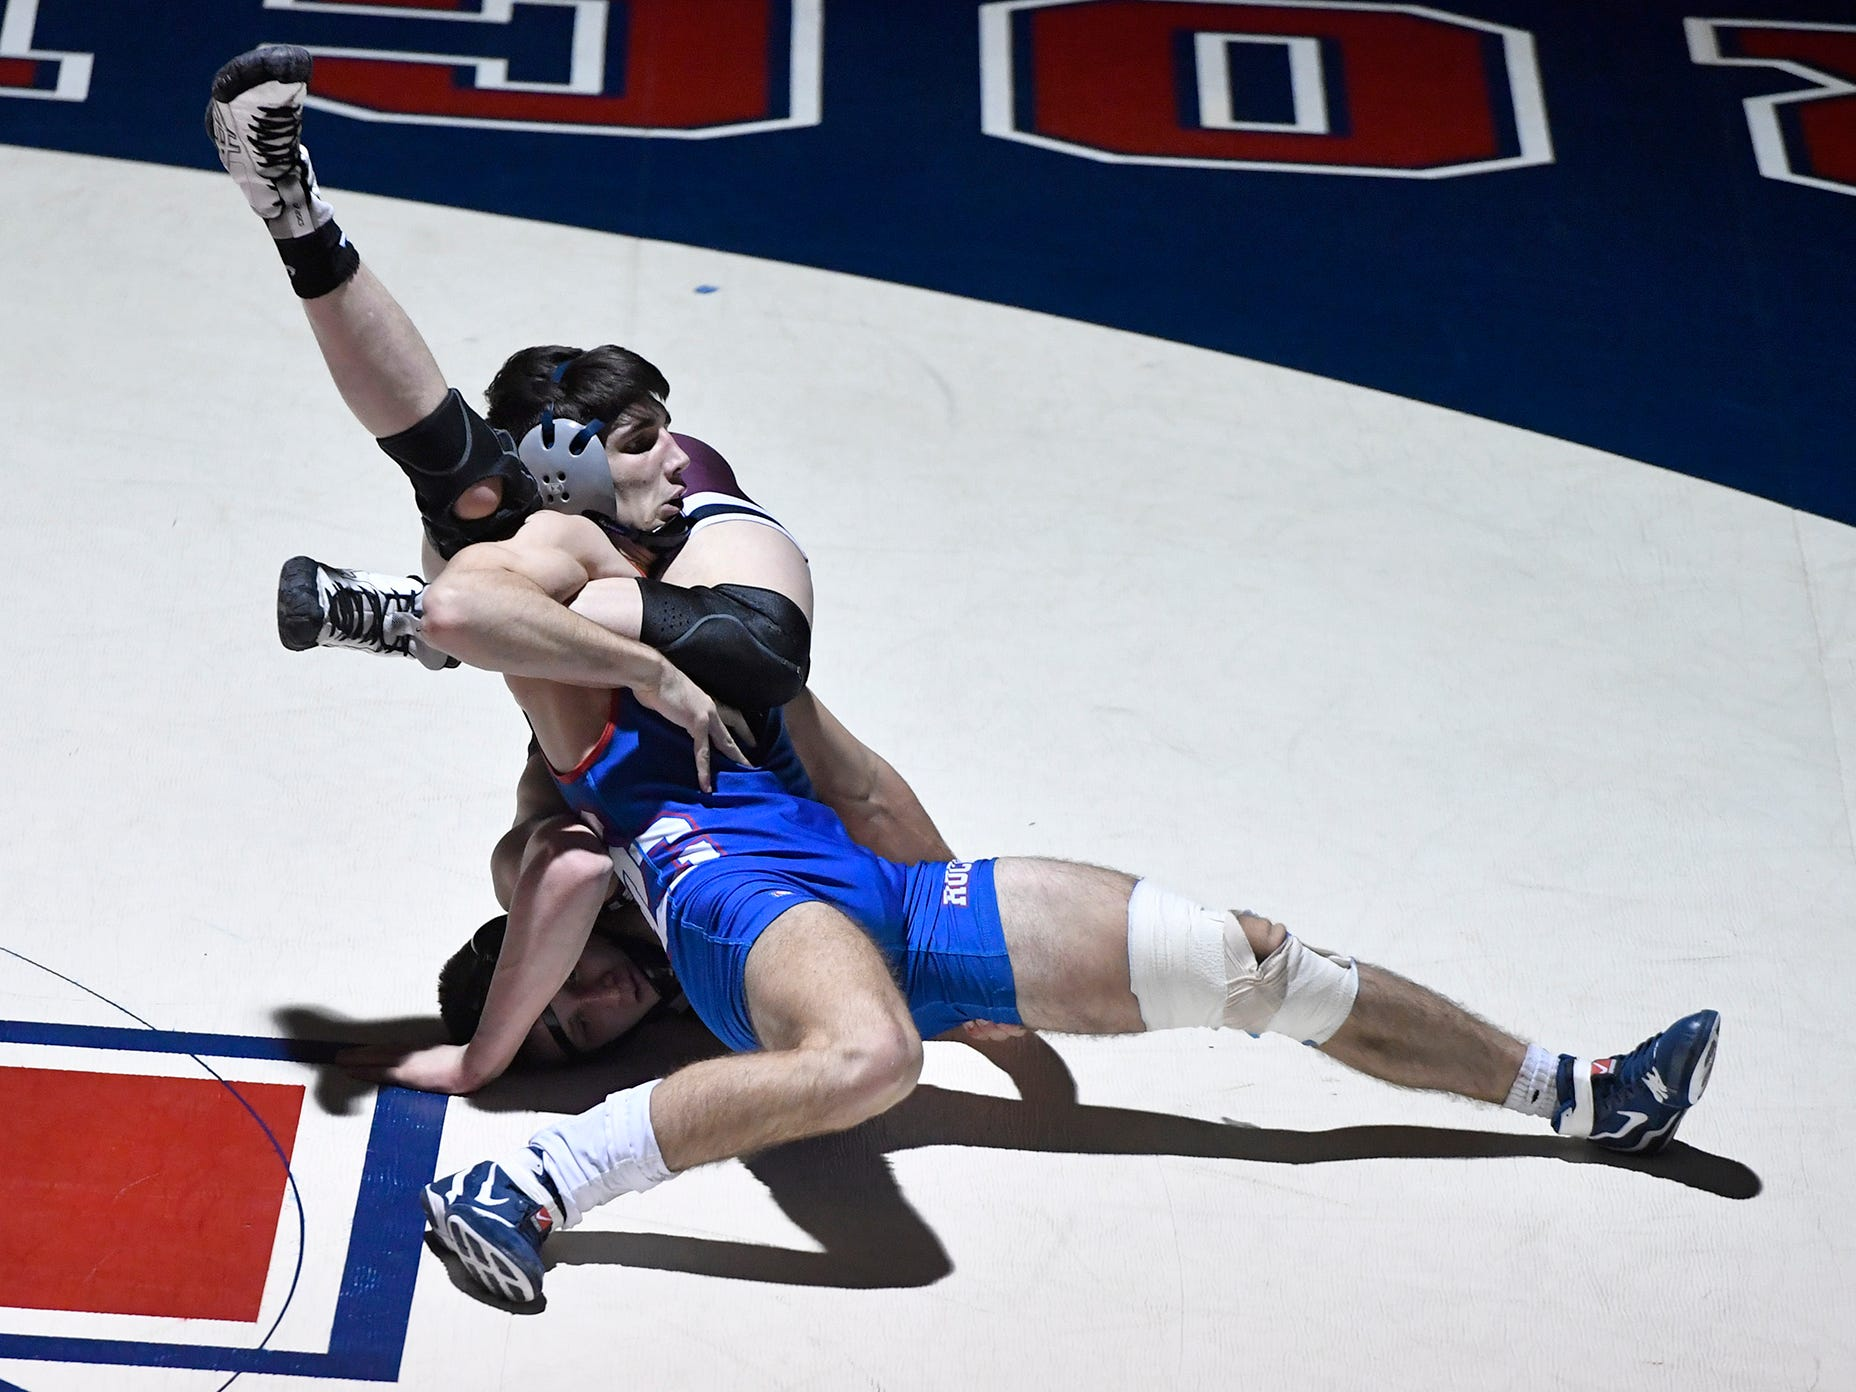 Dylan Reinert of Gettysburg and Spring Grove's Anthony Hinson tangle up during the 160 pound match, Thursday, January 3, 2019